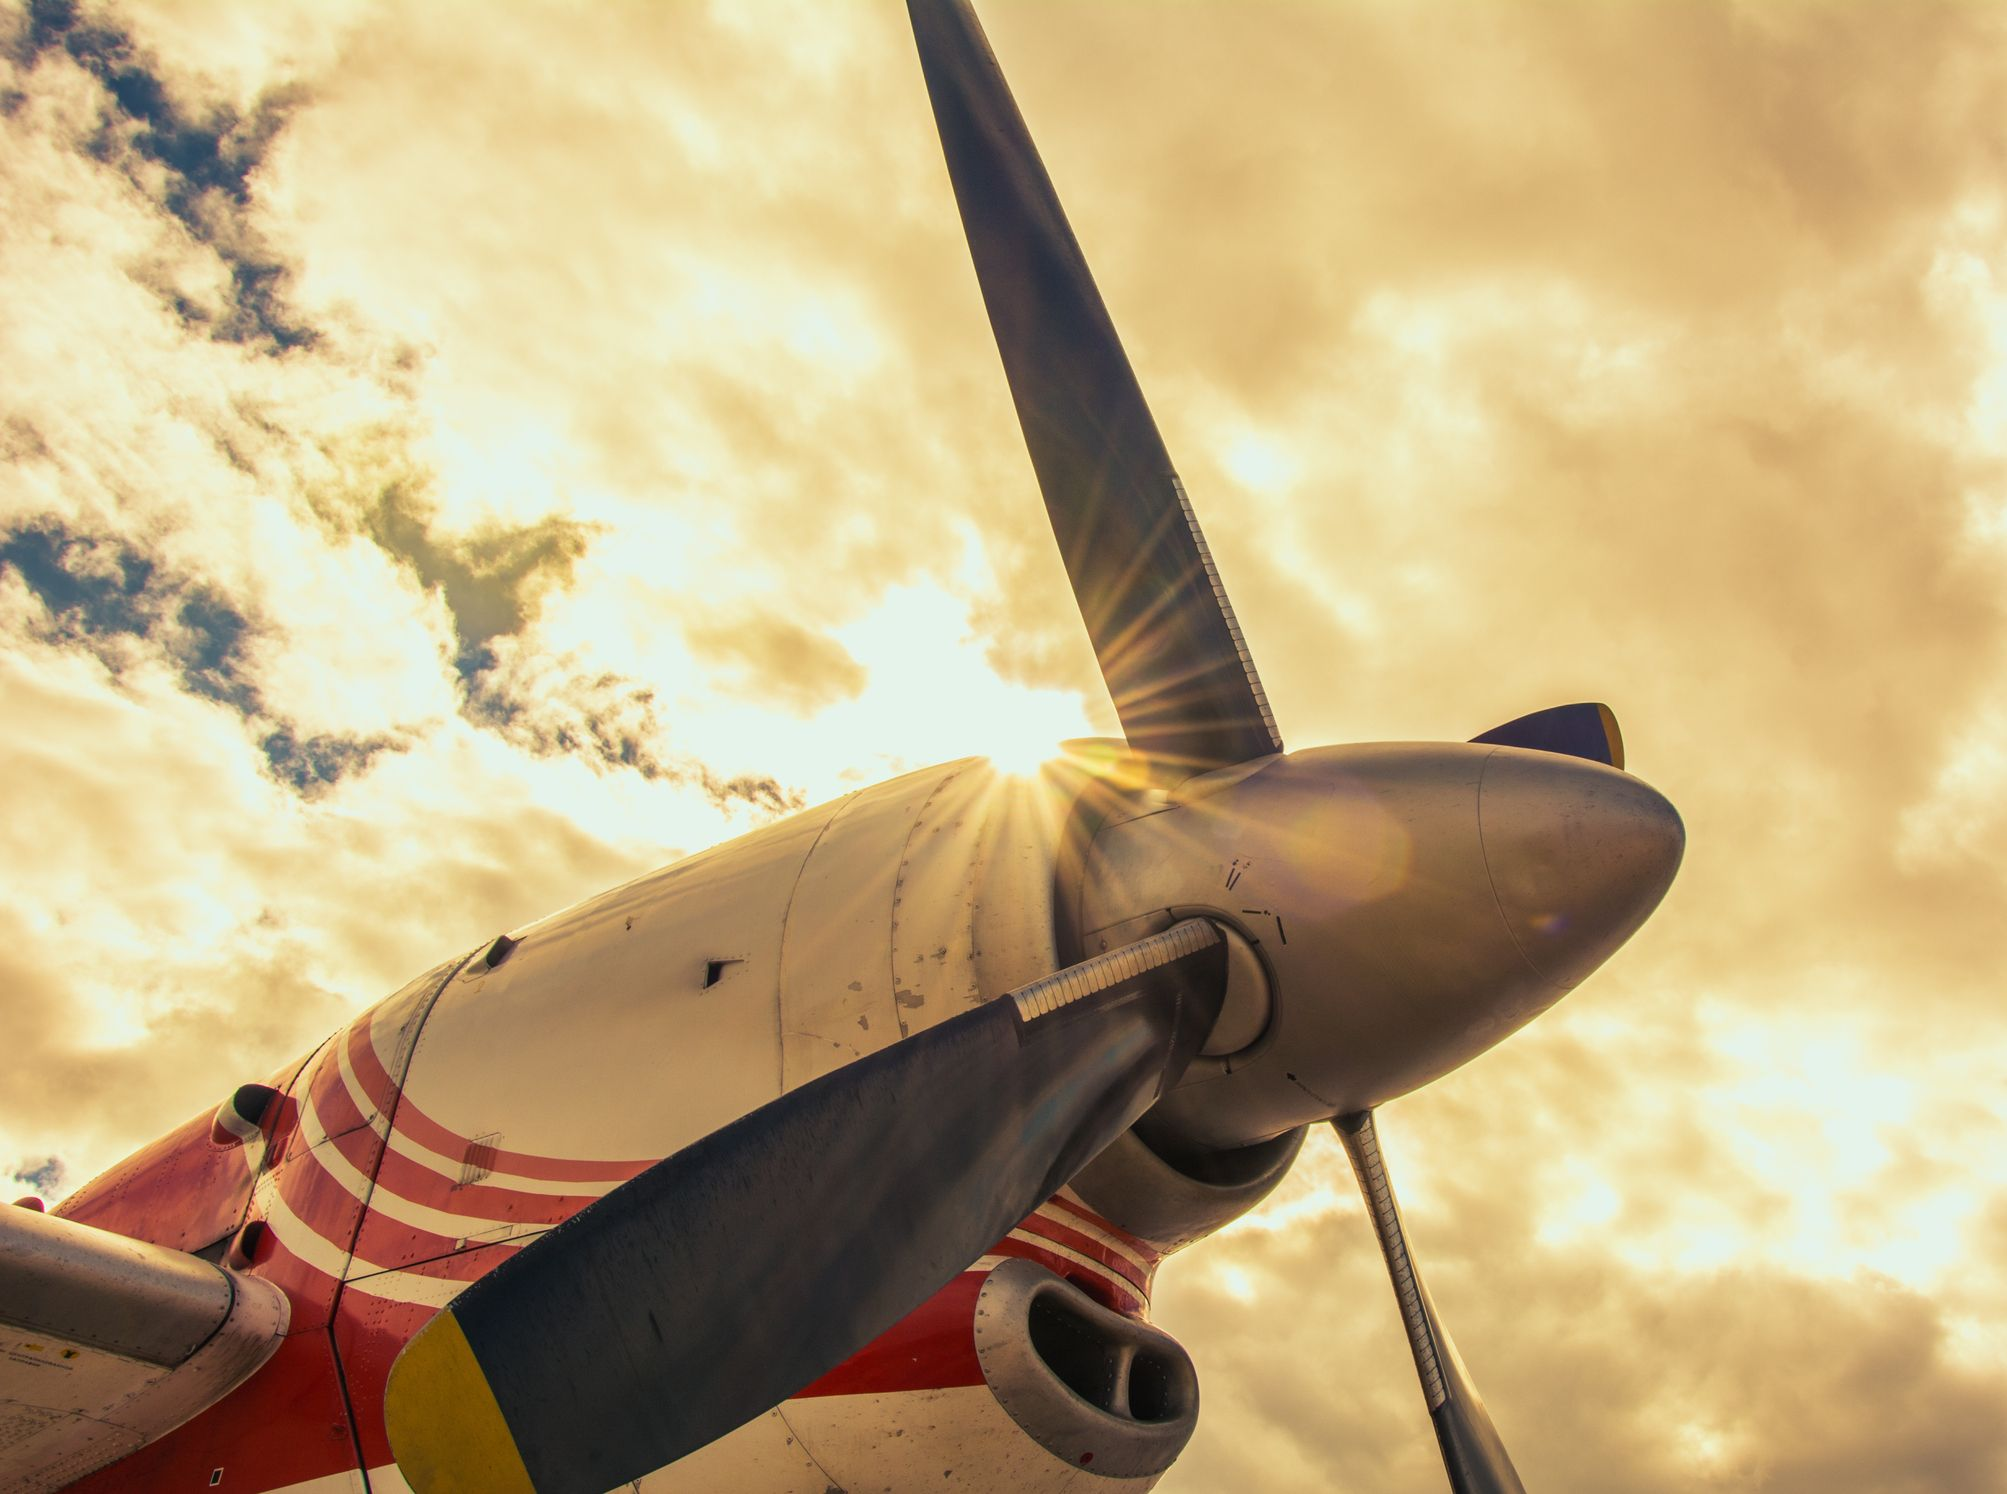 Front propeller of an airplane